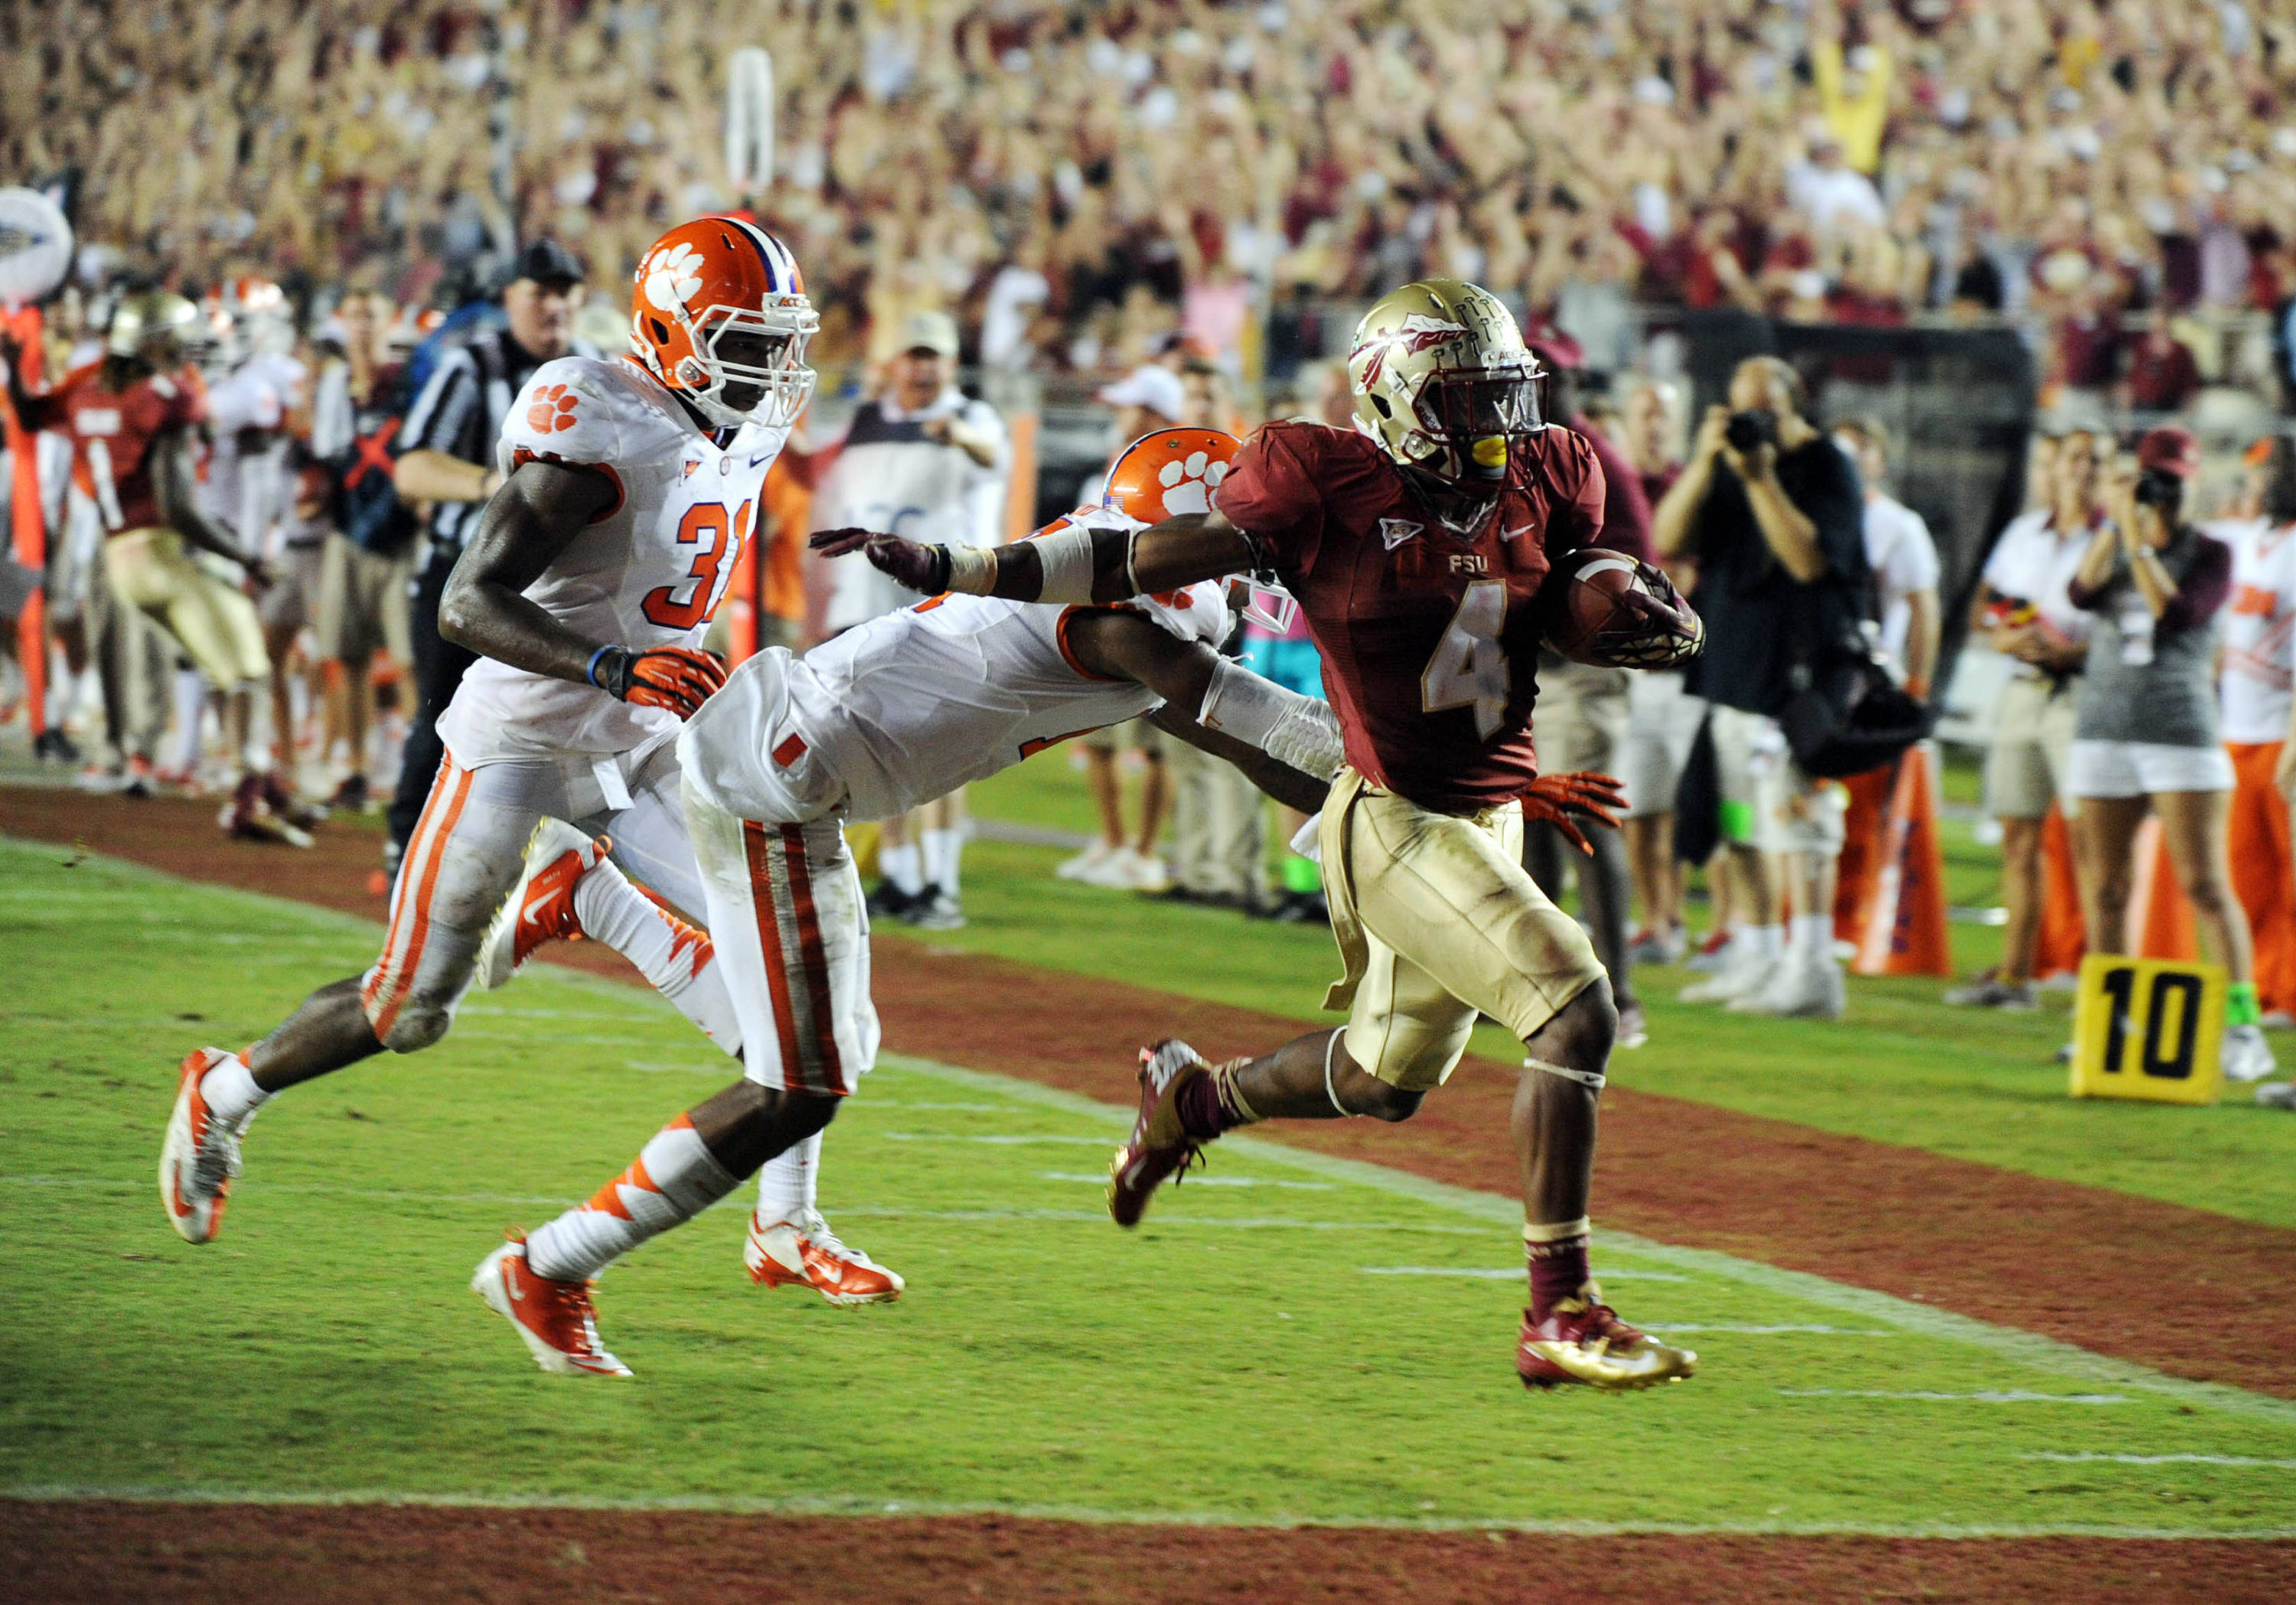 Sept 22, 2012;  Tallahassee, Florida, USA; Florida State Seminoles running back Chris Thompson (4) runs for a touchdown past Clemson Tigers cornerback Bashaud Breeland (17) and safety Rashard Hall (31) during the second half of the game at Doak Campbell Stadium. Mandatory Credit: Melina Vastola-USA TODAY Sports